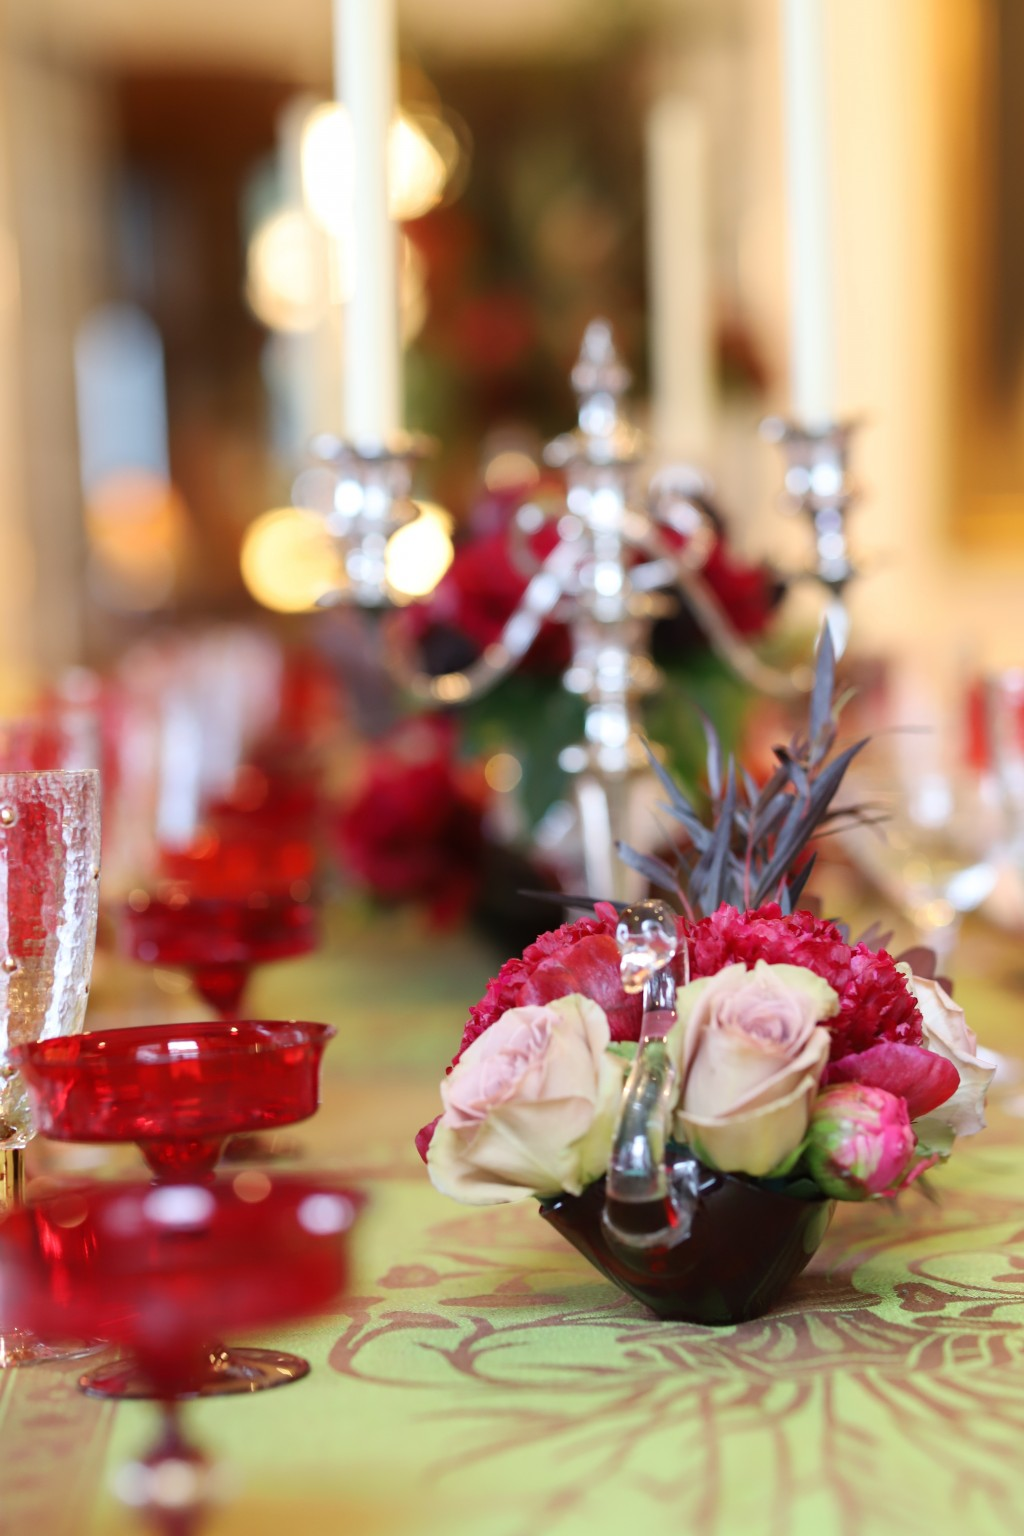 This photo provided by interior designer Elizabeth Stuart shows some centerpieces she created on a table in a residence in Charleston, S.C. Don't feel...